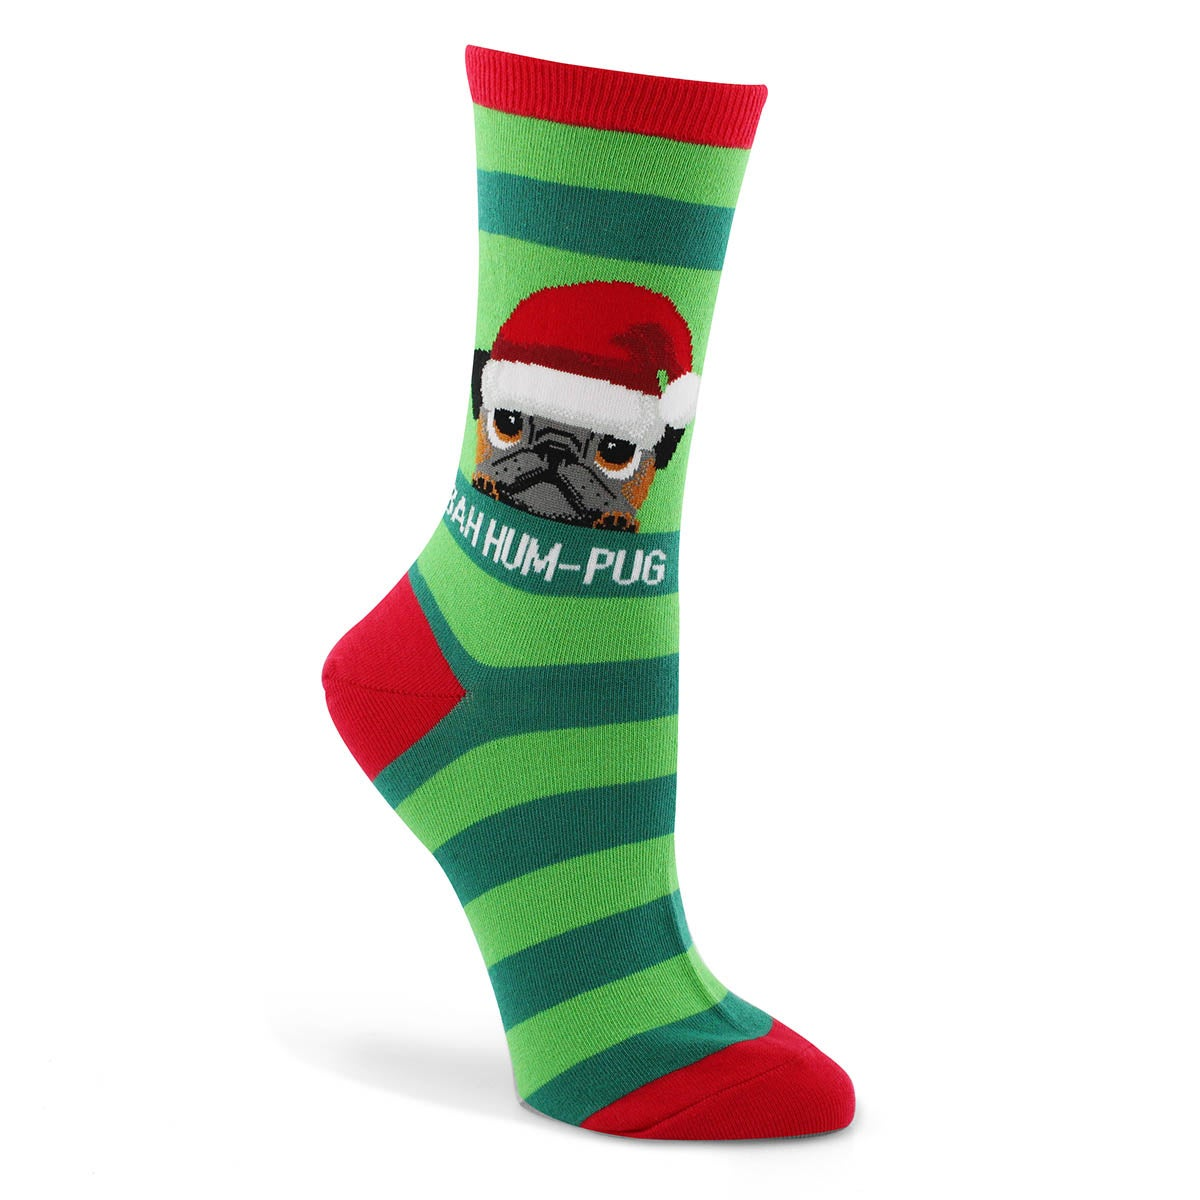 Lds Bah Humpug green printed sock